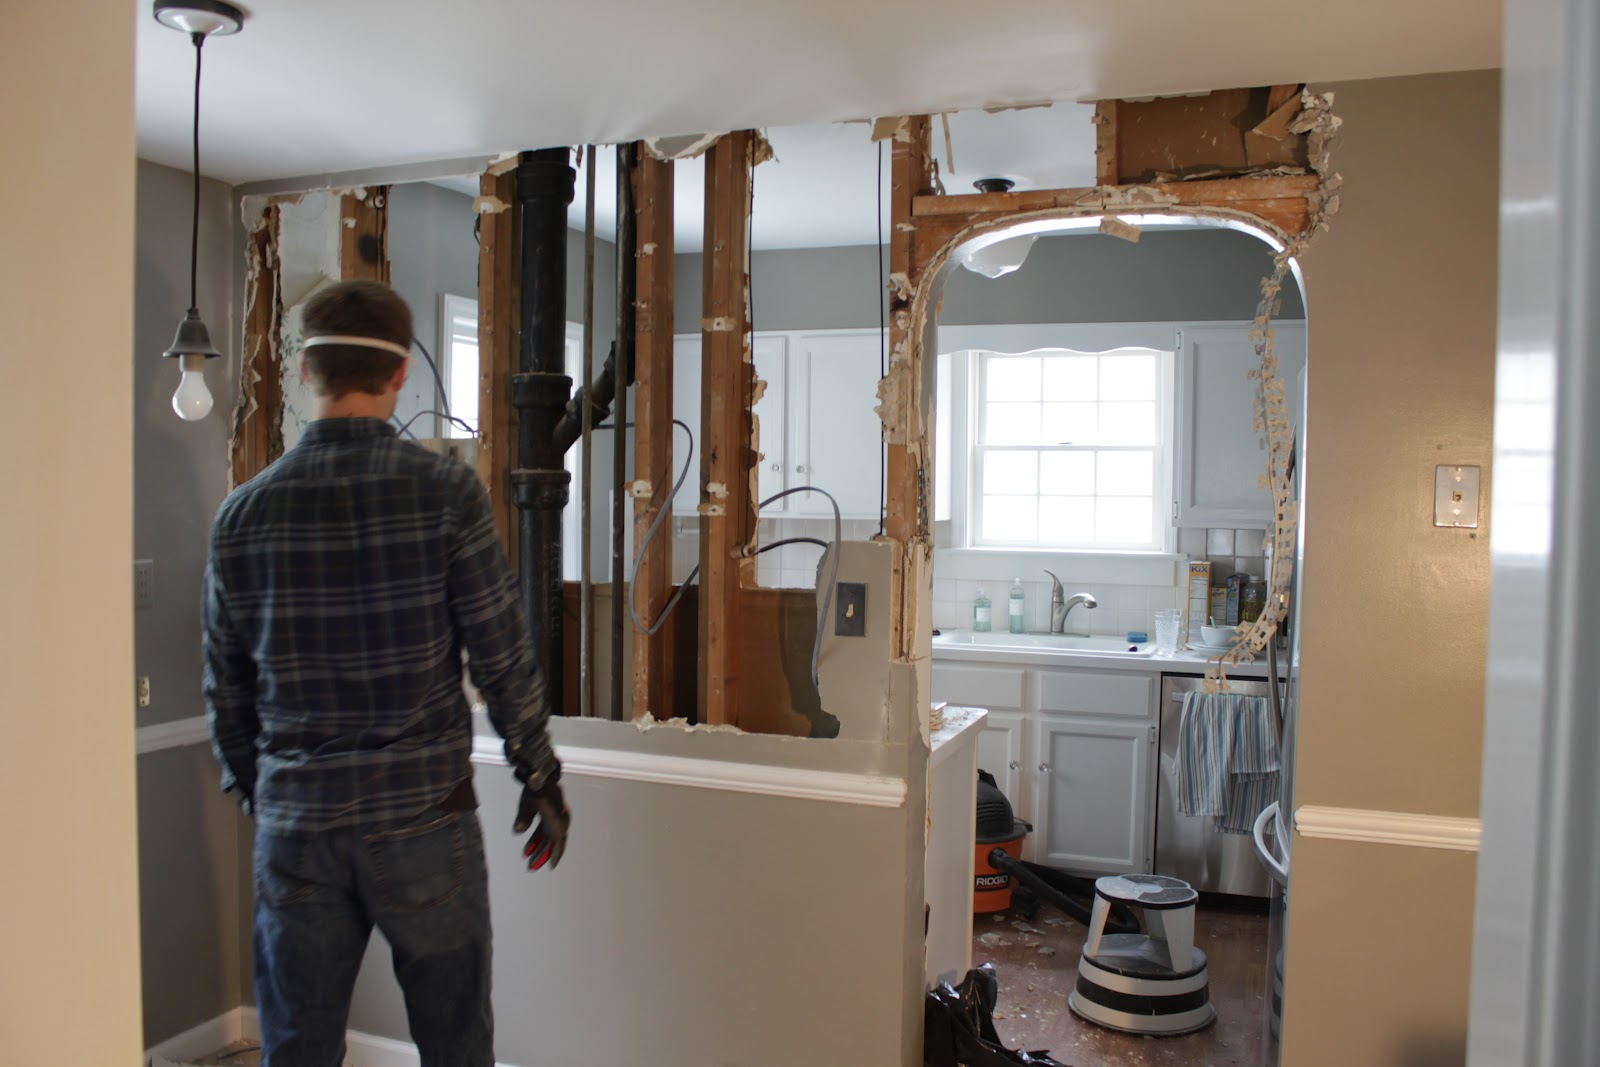 Home remodeling contractors-Wellington Kitchen & Bath Home Remodeling Solutions-We do kitchen & bath remodeling, home renovations, custom lighting, custom cabinet installation, cabinet refacing and refinishing, outdoor kitchens, commercial kitchen, countertops, and more